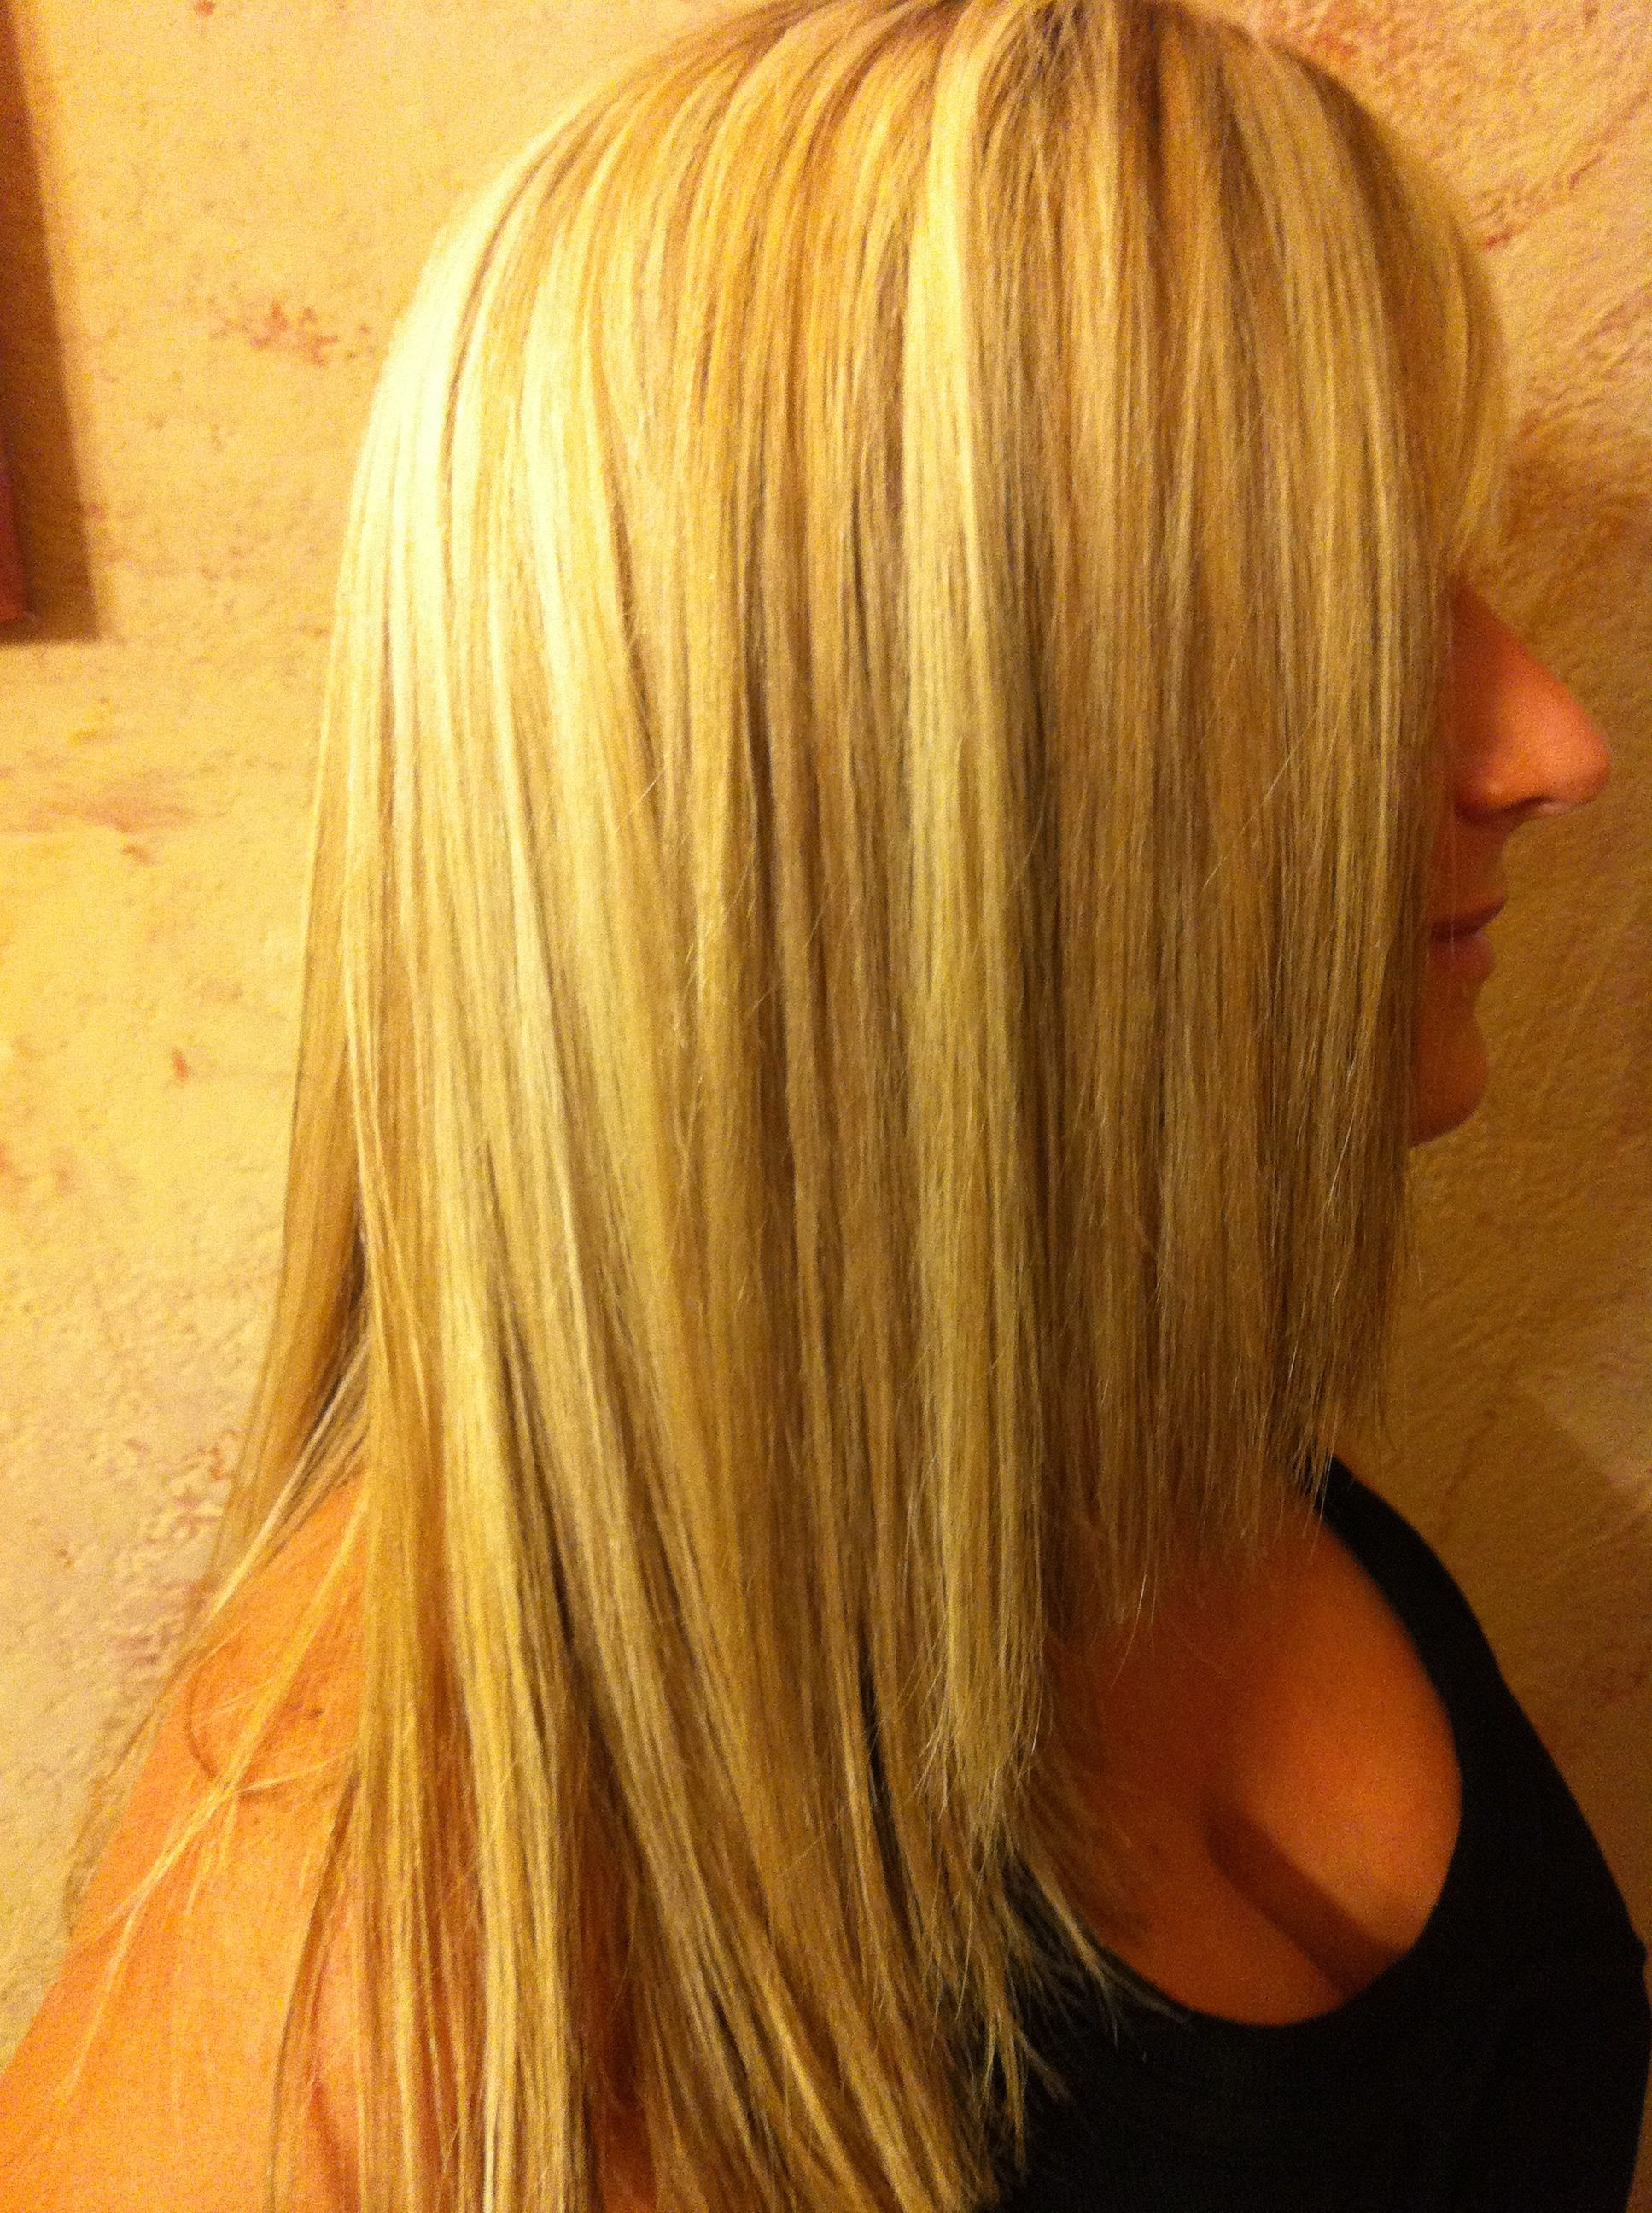 Three Dimensional Hair Color Via Weave Adds Texture And Shine